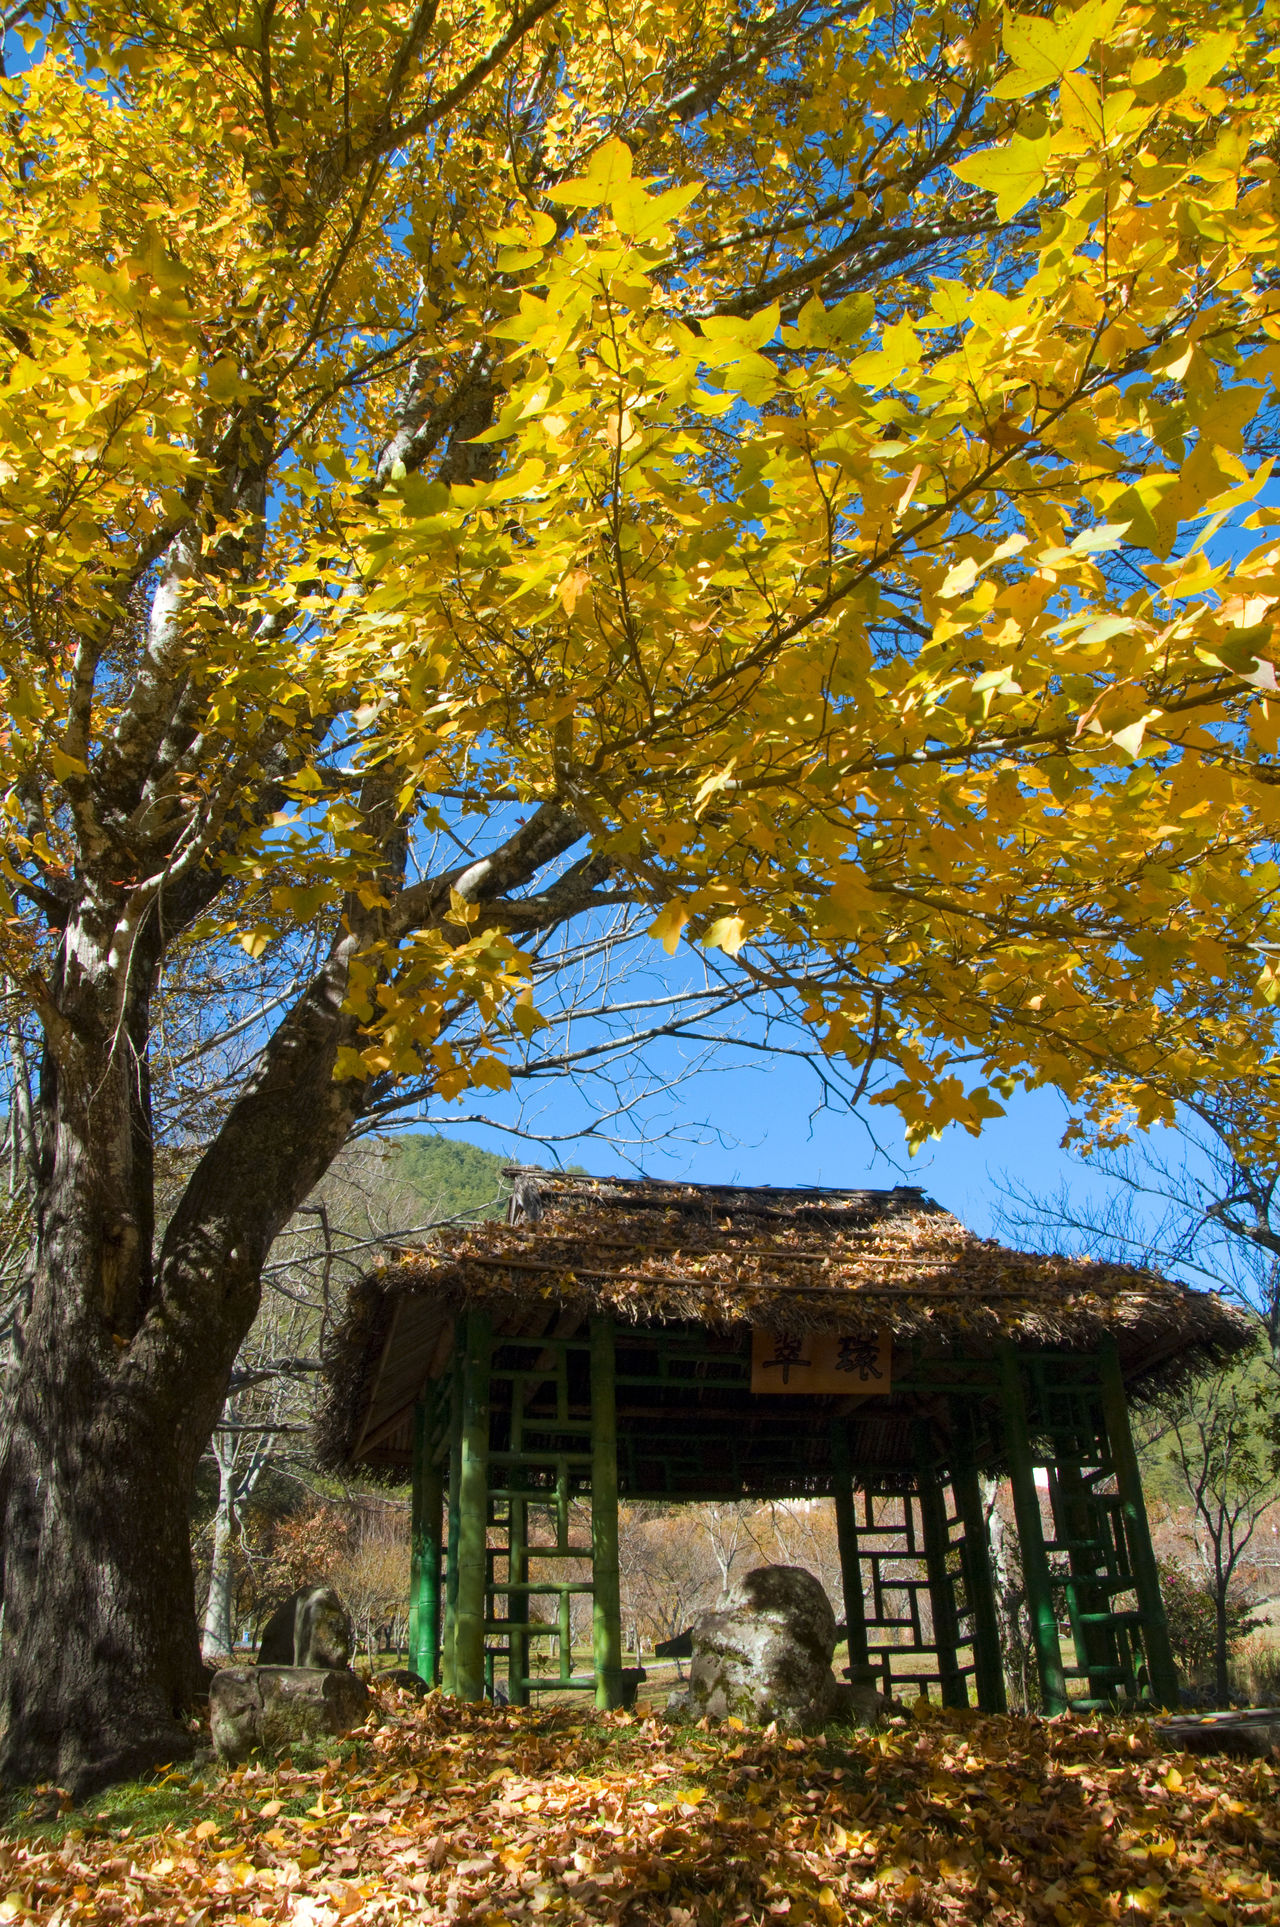 Architecture Atmosphere Autumn Autumn Building Building Exterior Built Structure Cool Day Fall Go Sightseeing Landscape Leaf Leisure Life Maple Mountain Nature No People Outdoors Travel Travel Destinations Tree Tree